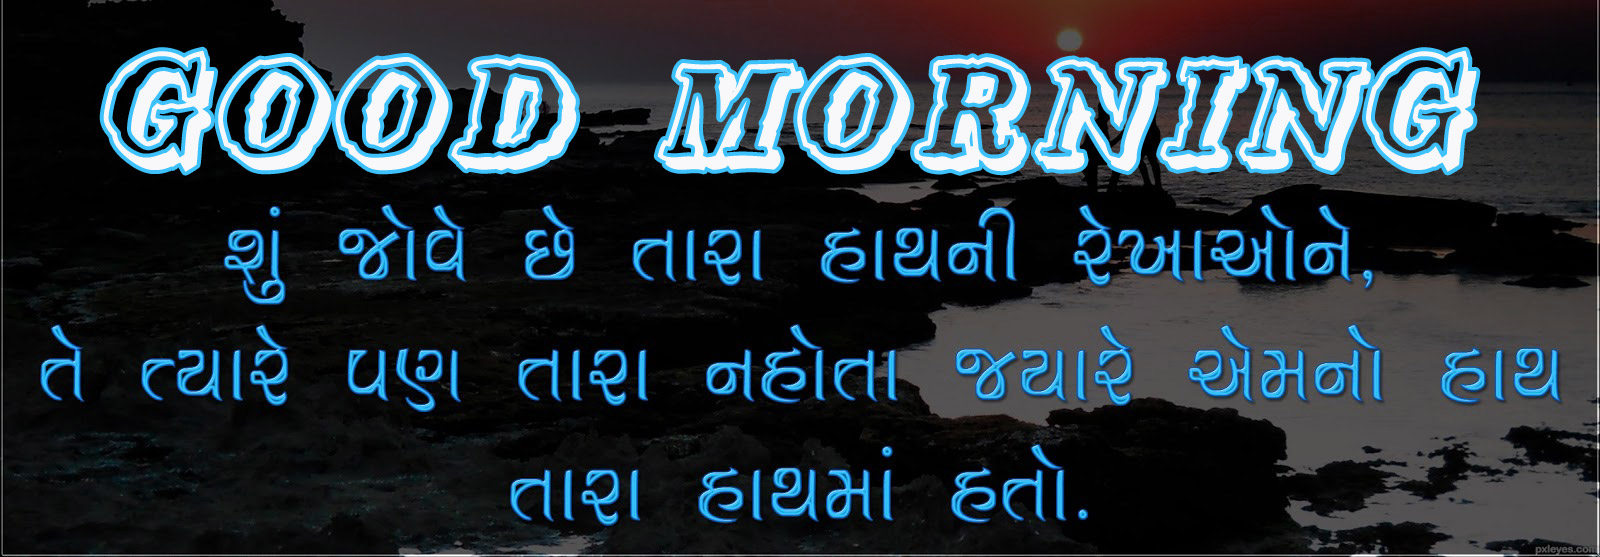 Gujarati Good Morning Images Wallpaper Photo Pictures Pics Free HD